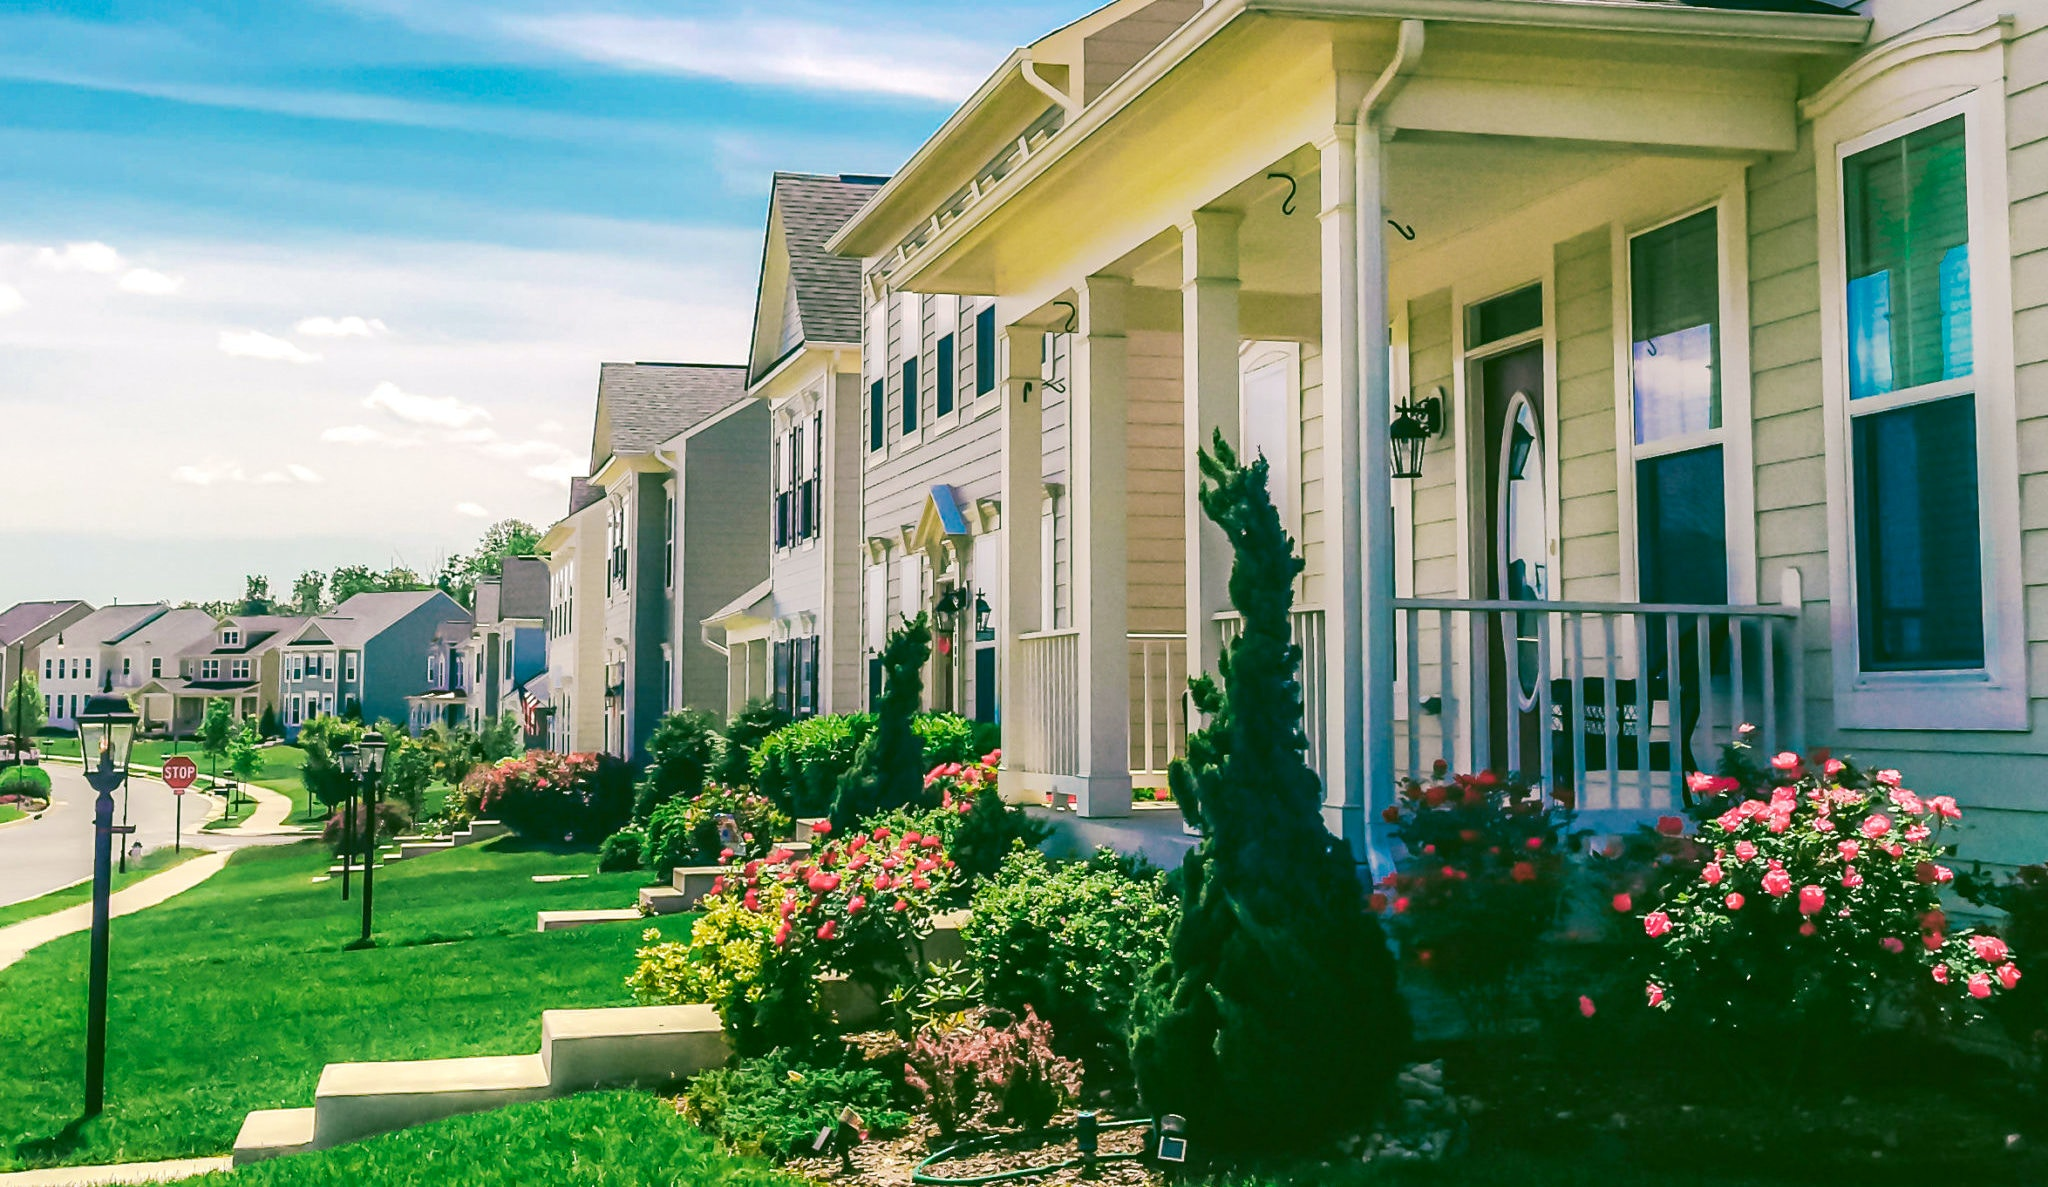 How a security system can benefit the neighborhood